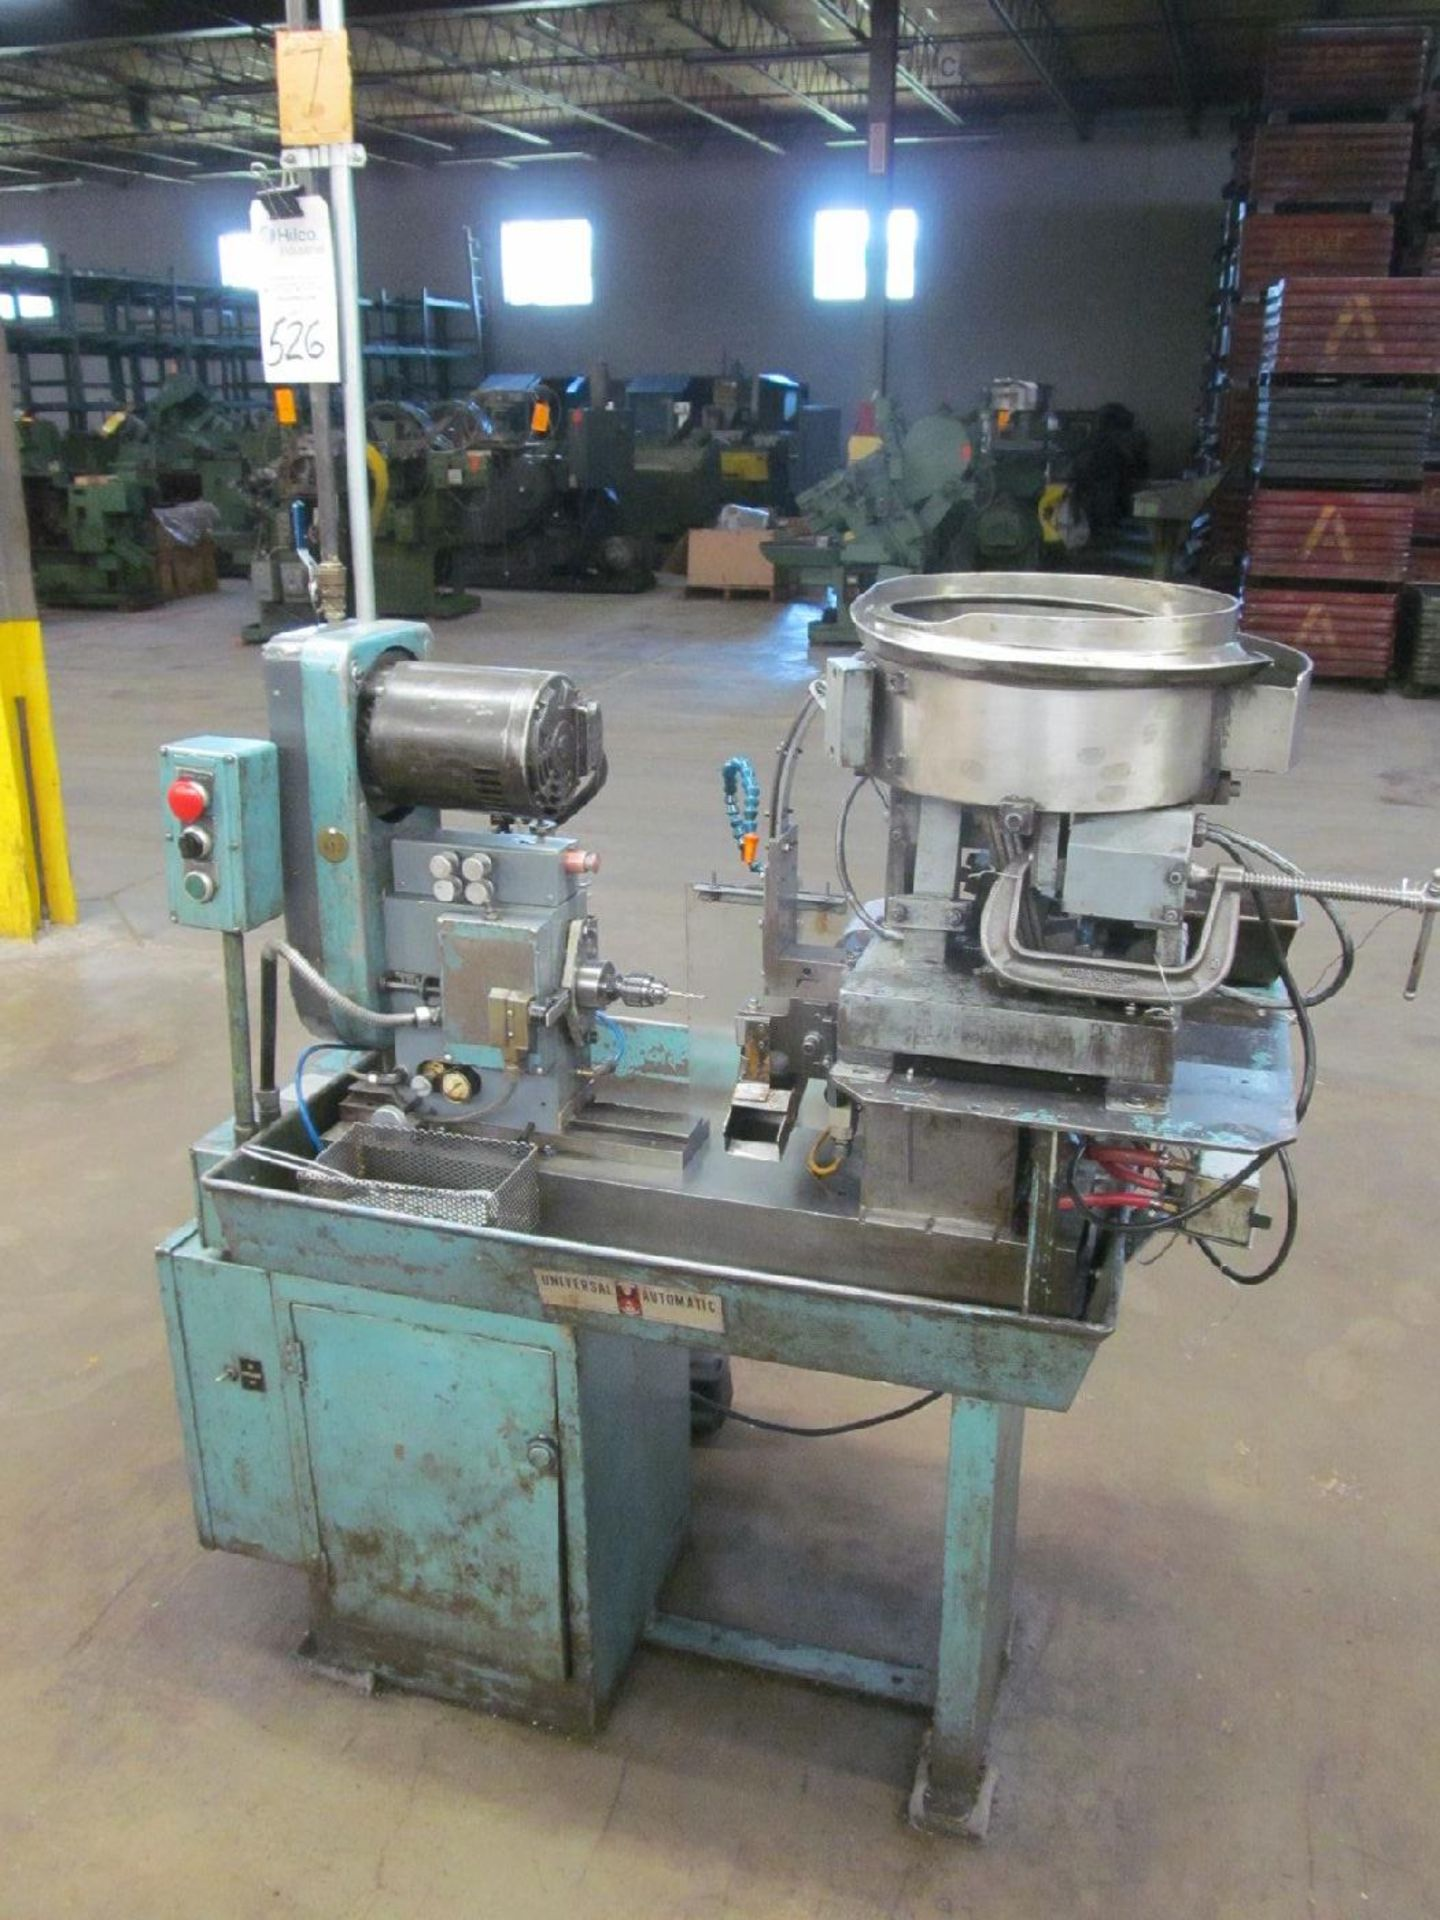 Lot 526 - Universal Automatic Corp. Model AS Single Spindle Horizontal Drilling & Tapping Machine